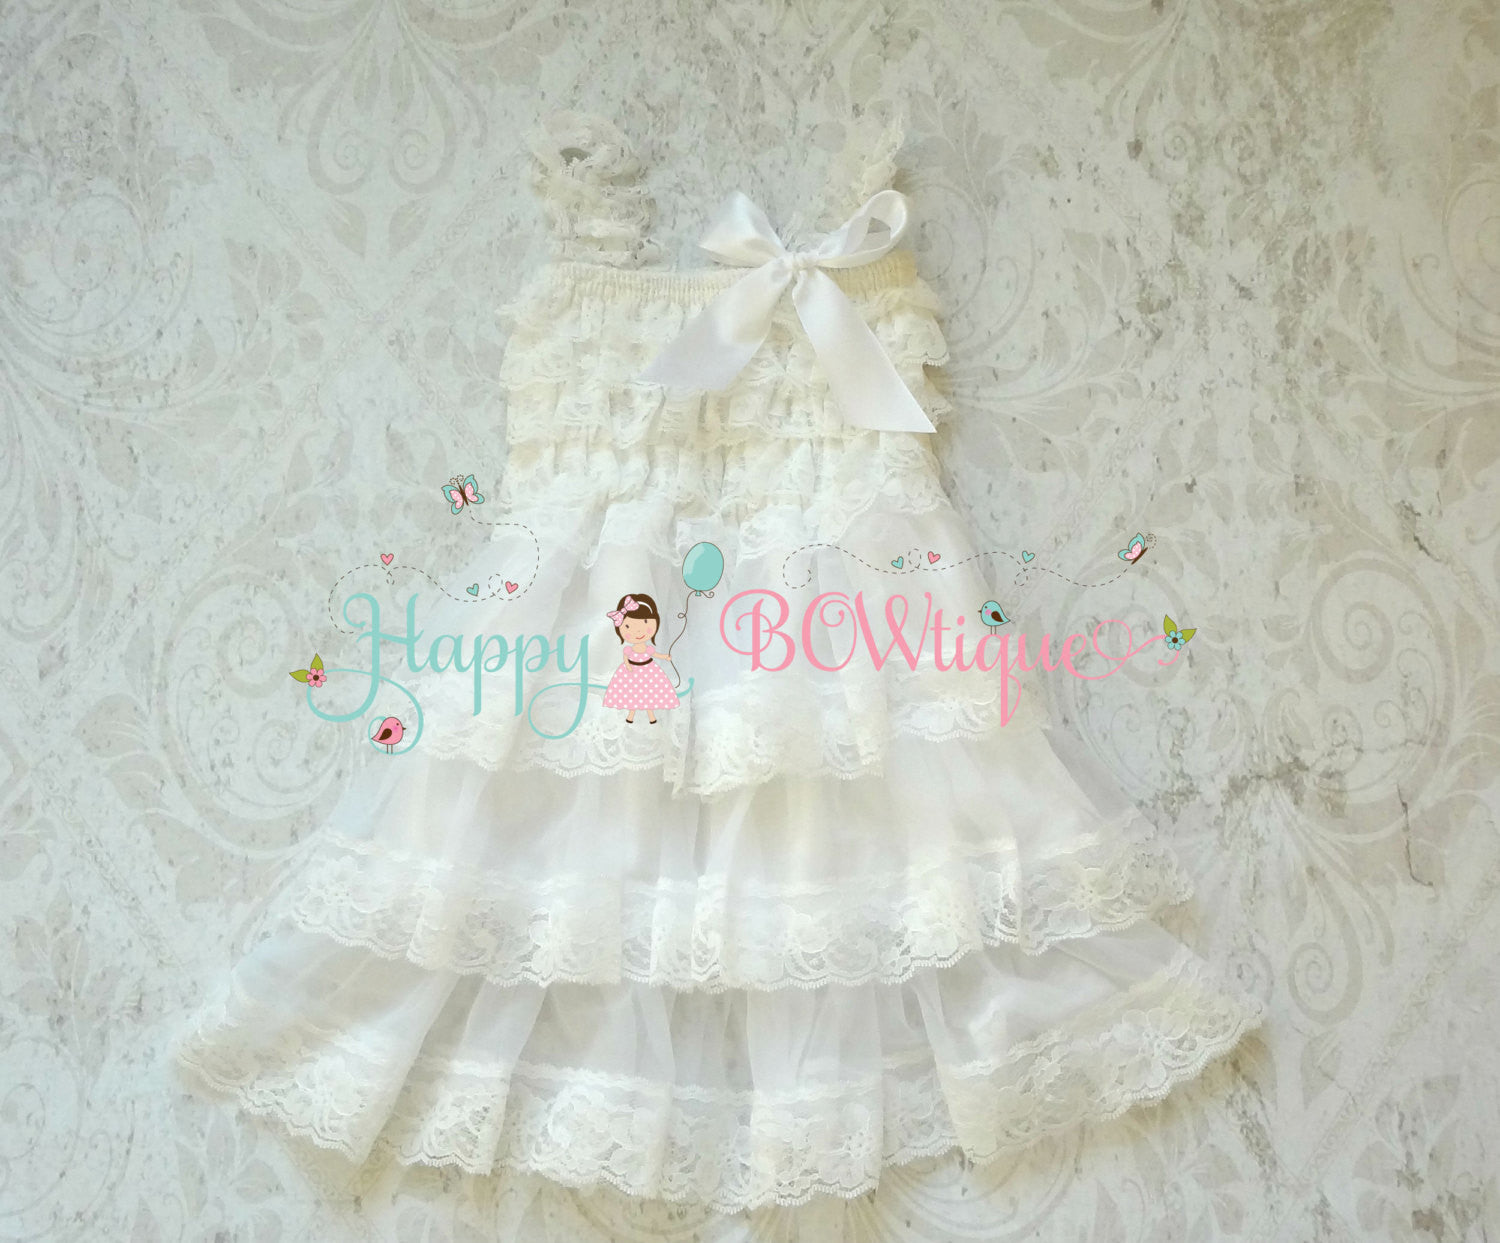 Victorian White Chiffon lace dress set / Girl White Lace Dress - Happy BOWtique - children's clothing, Baby Girl clothing